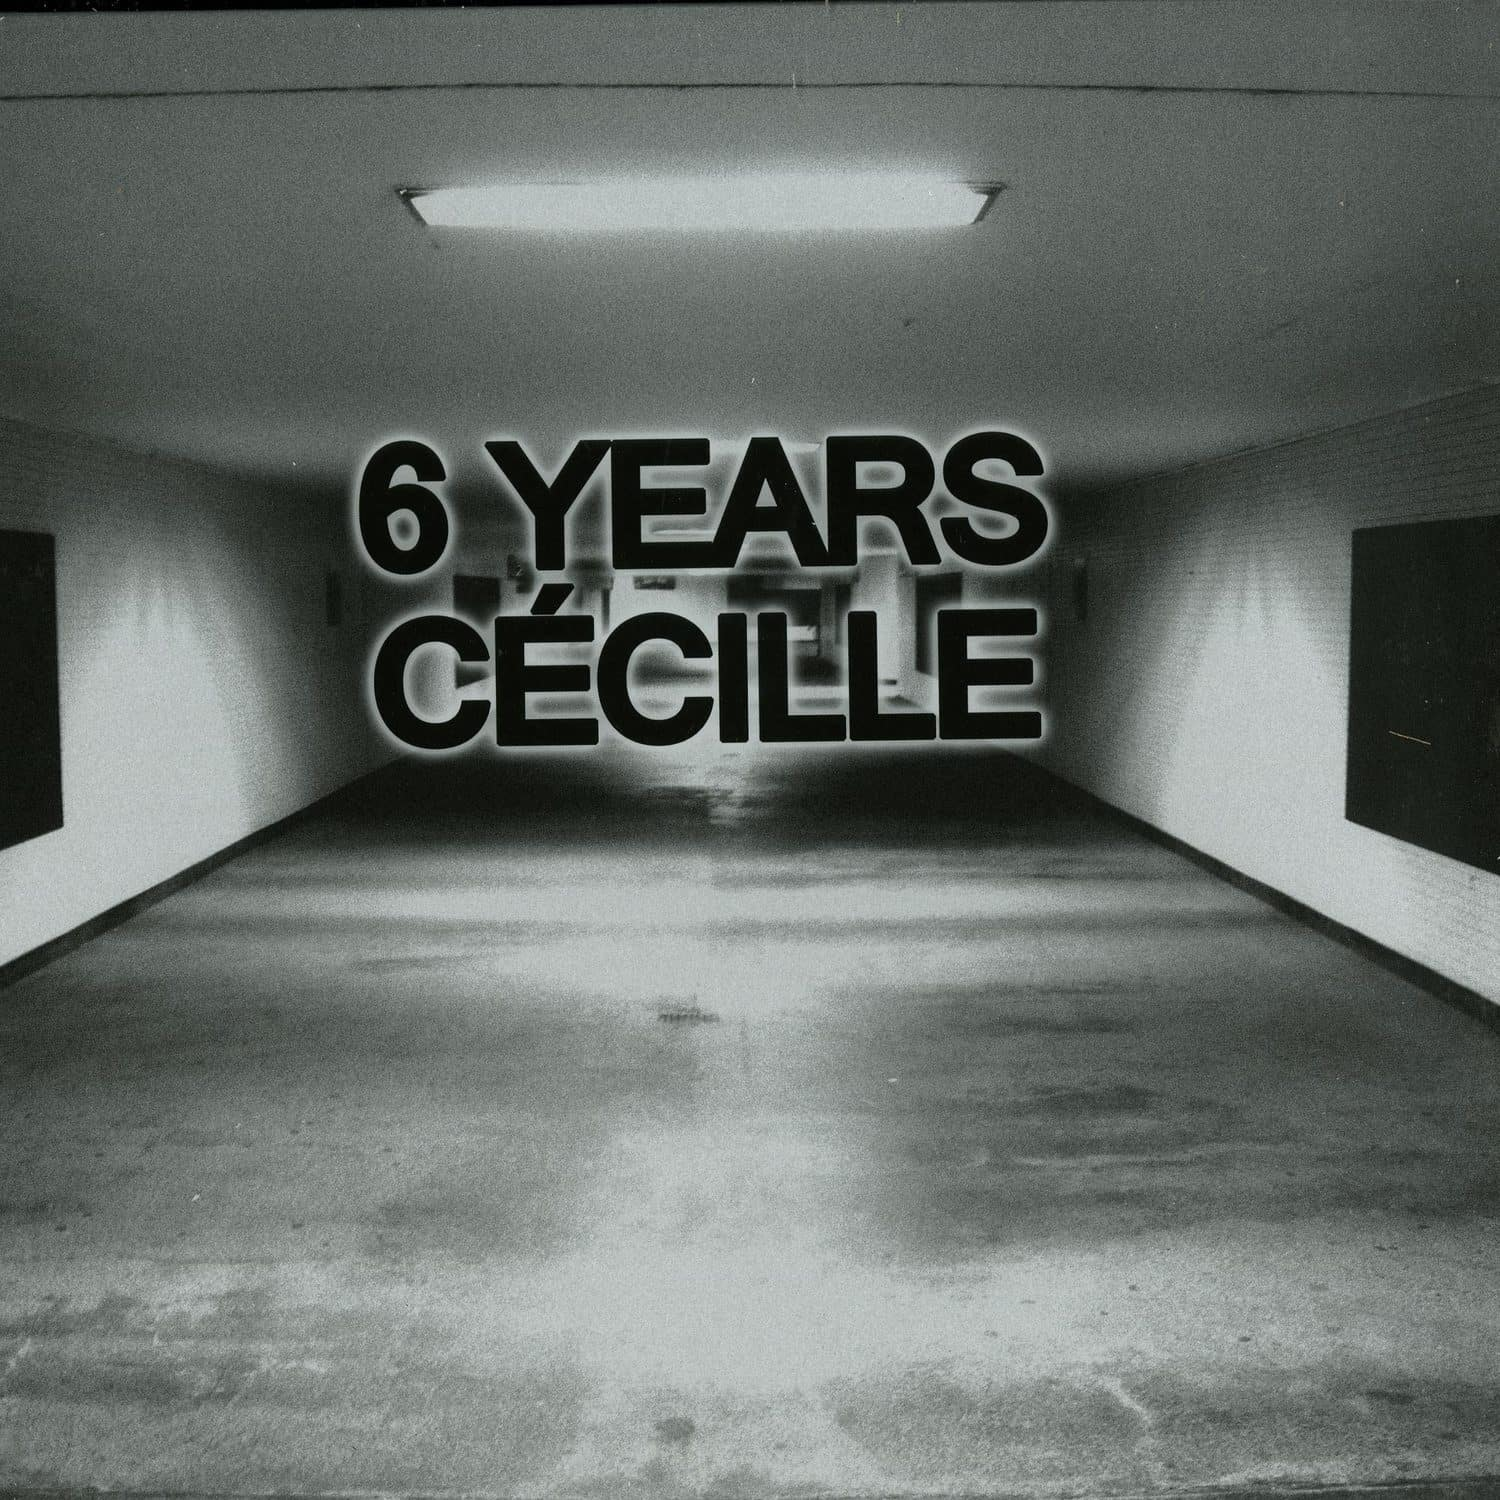 Various Artists - 6 YEARS CECILLE - 5X12 INCH LP BOX